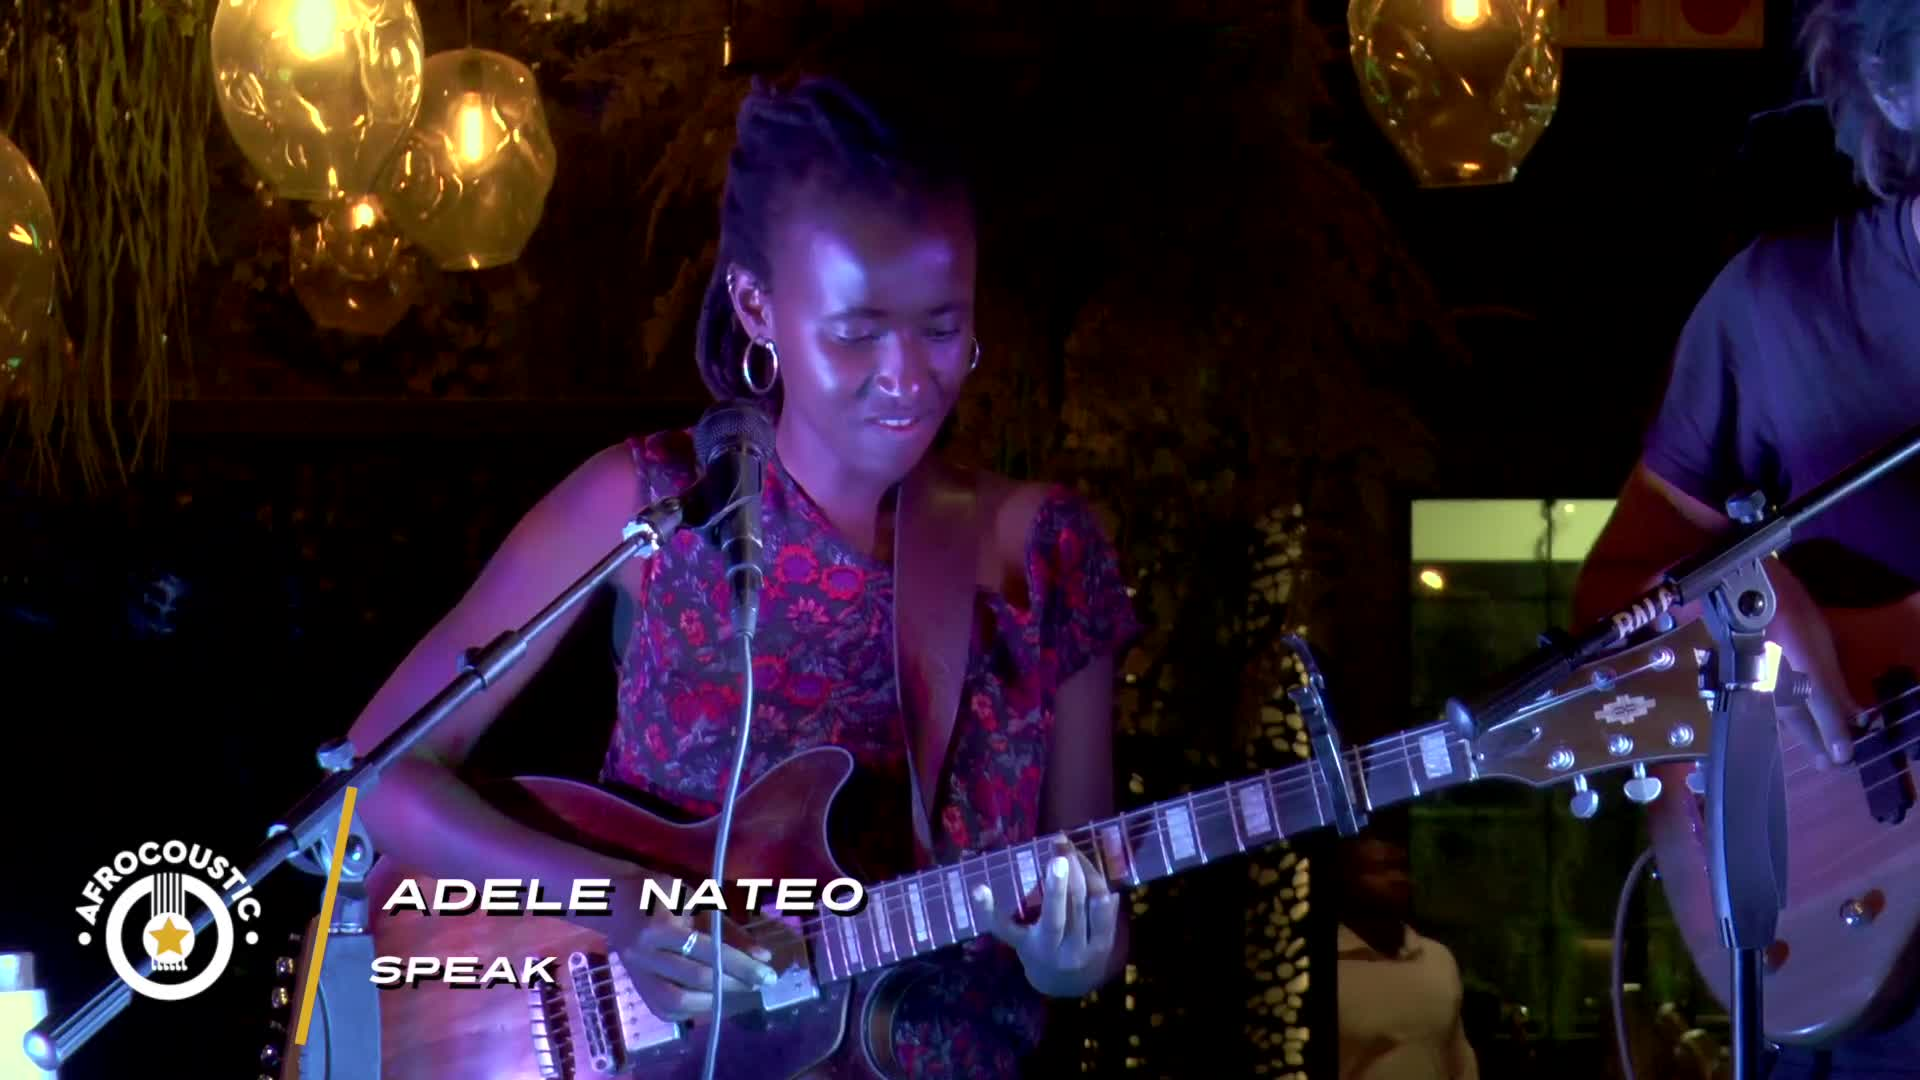 Afrocoustic - Adelle Nqeto - Speak